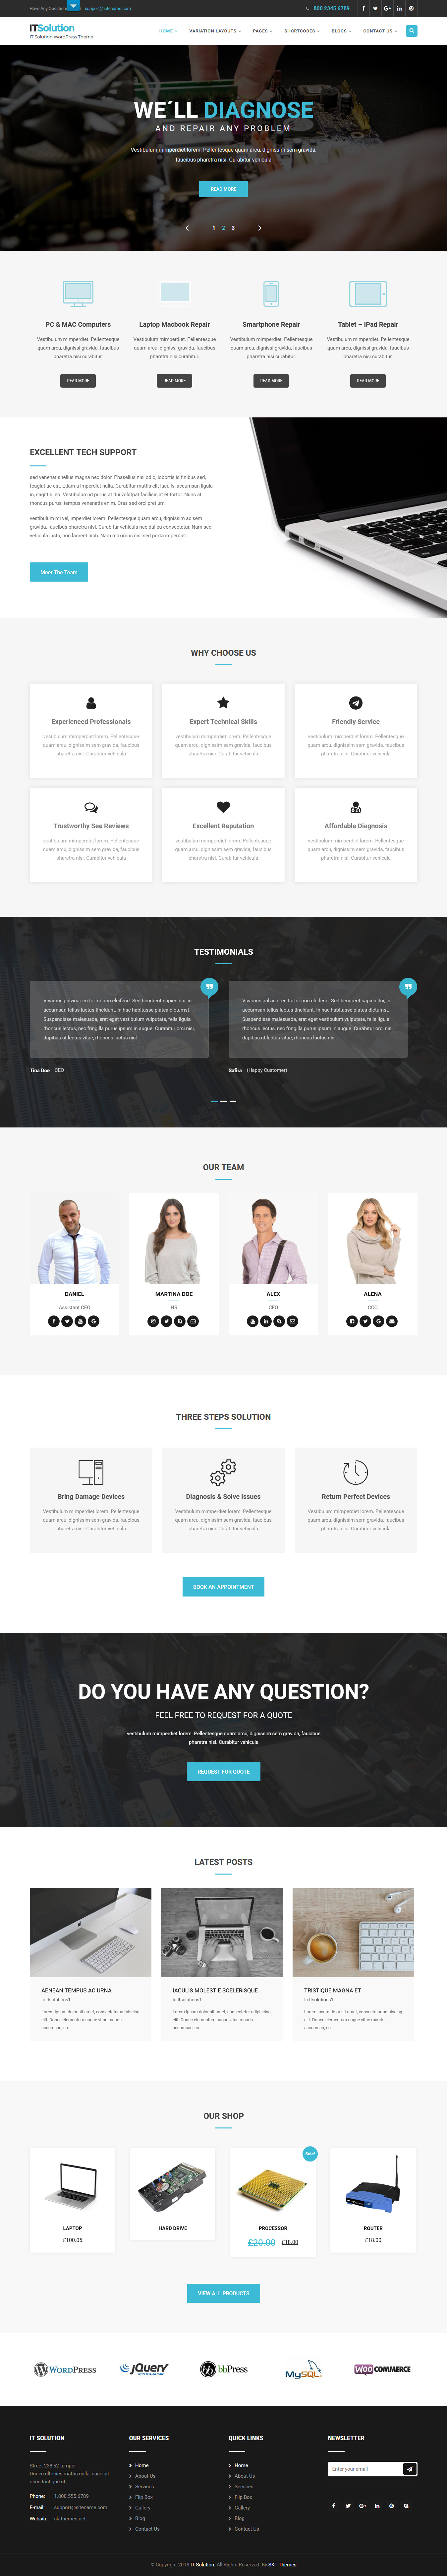 IT Solutions - Best Free Consulting WordPress Theme